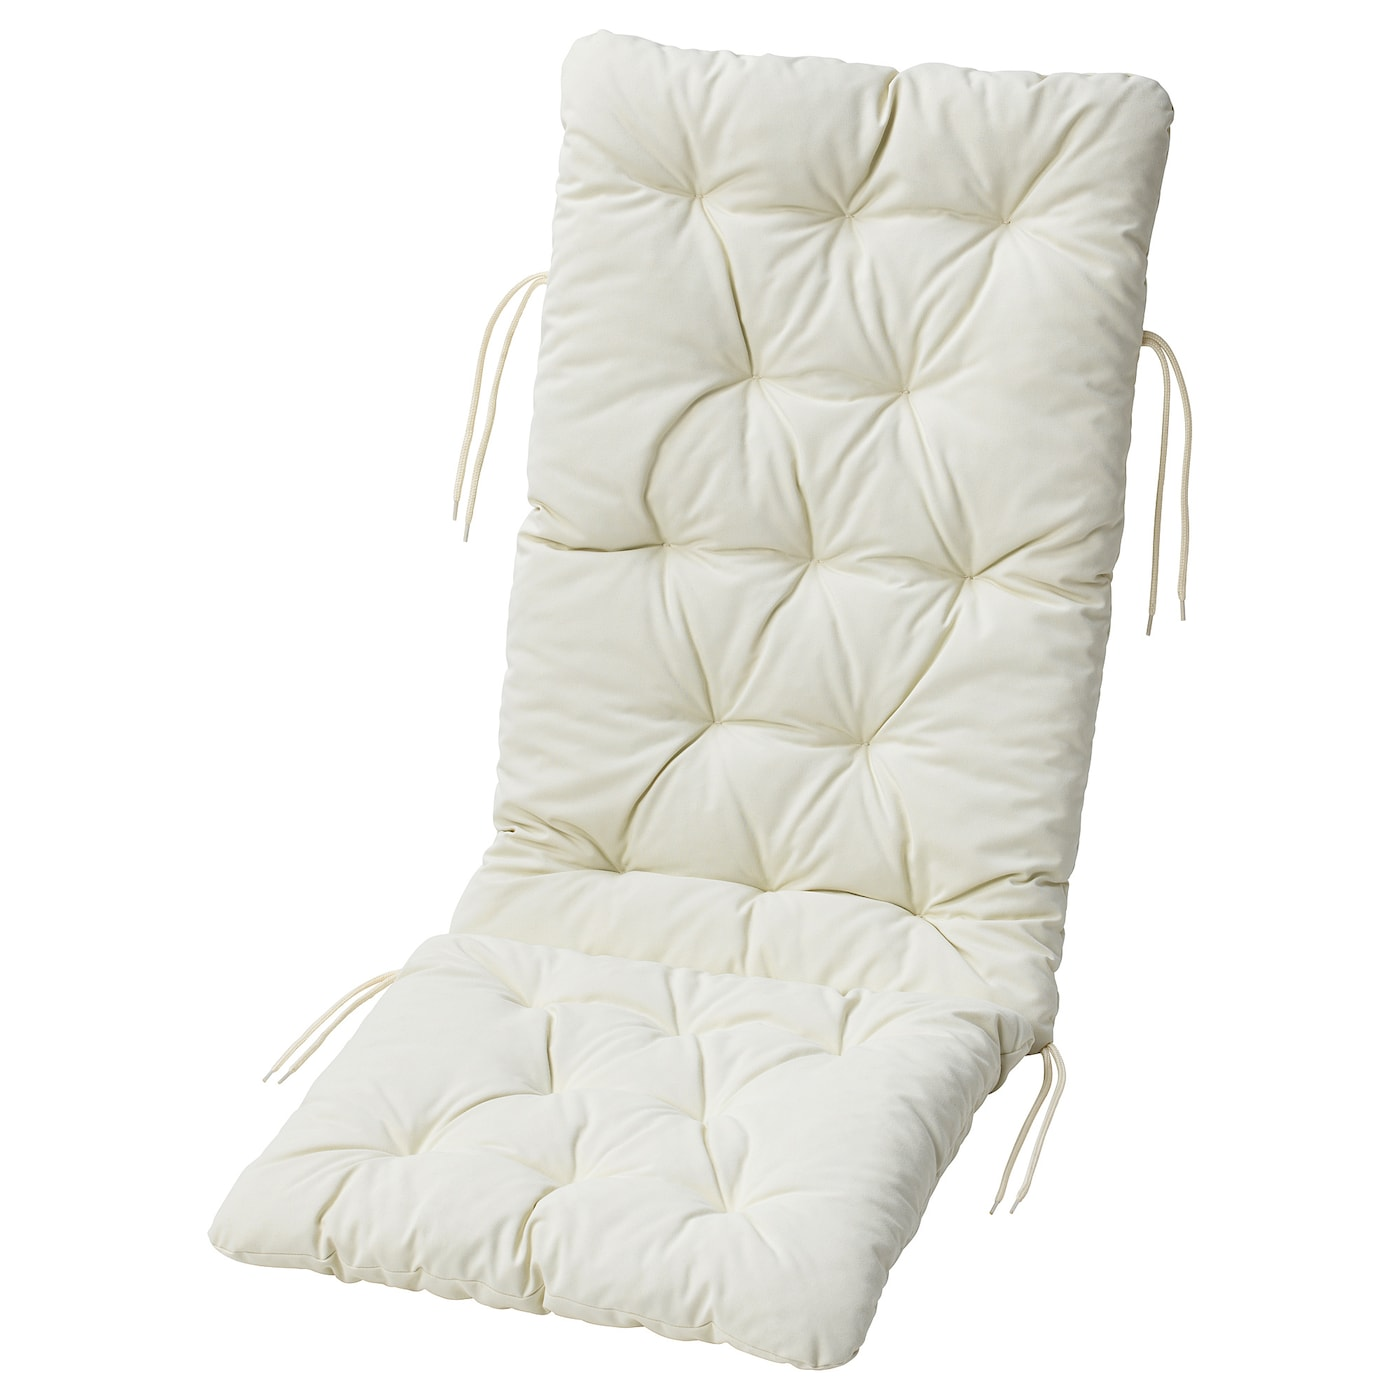 IKEA KUDDARNA seat/back cushion, outdoor Ties keep the cushion firmly in place on the chair.